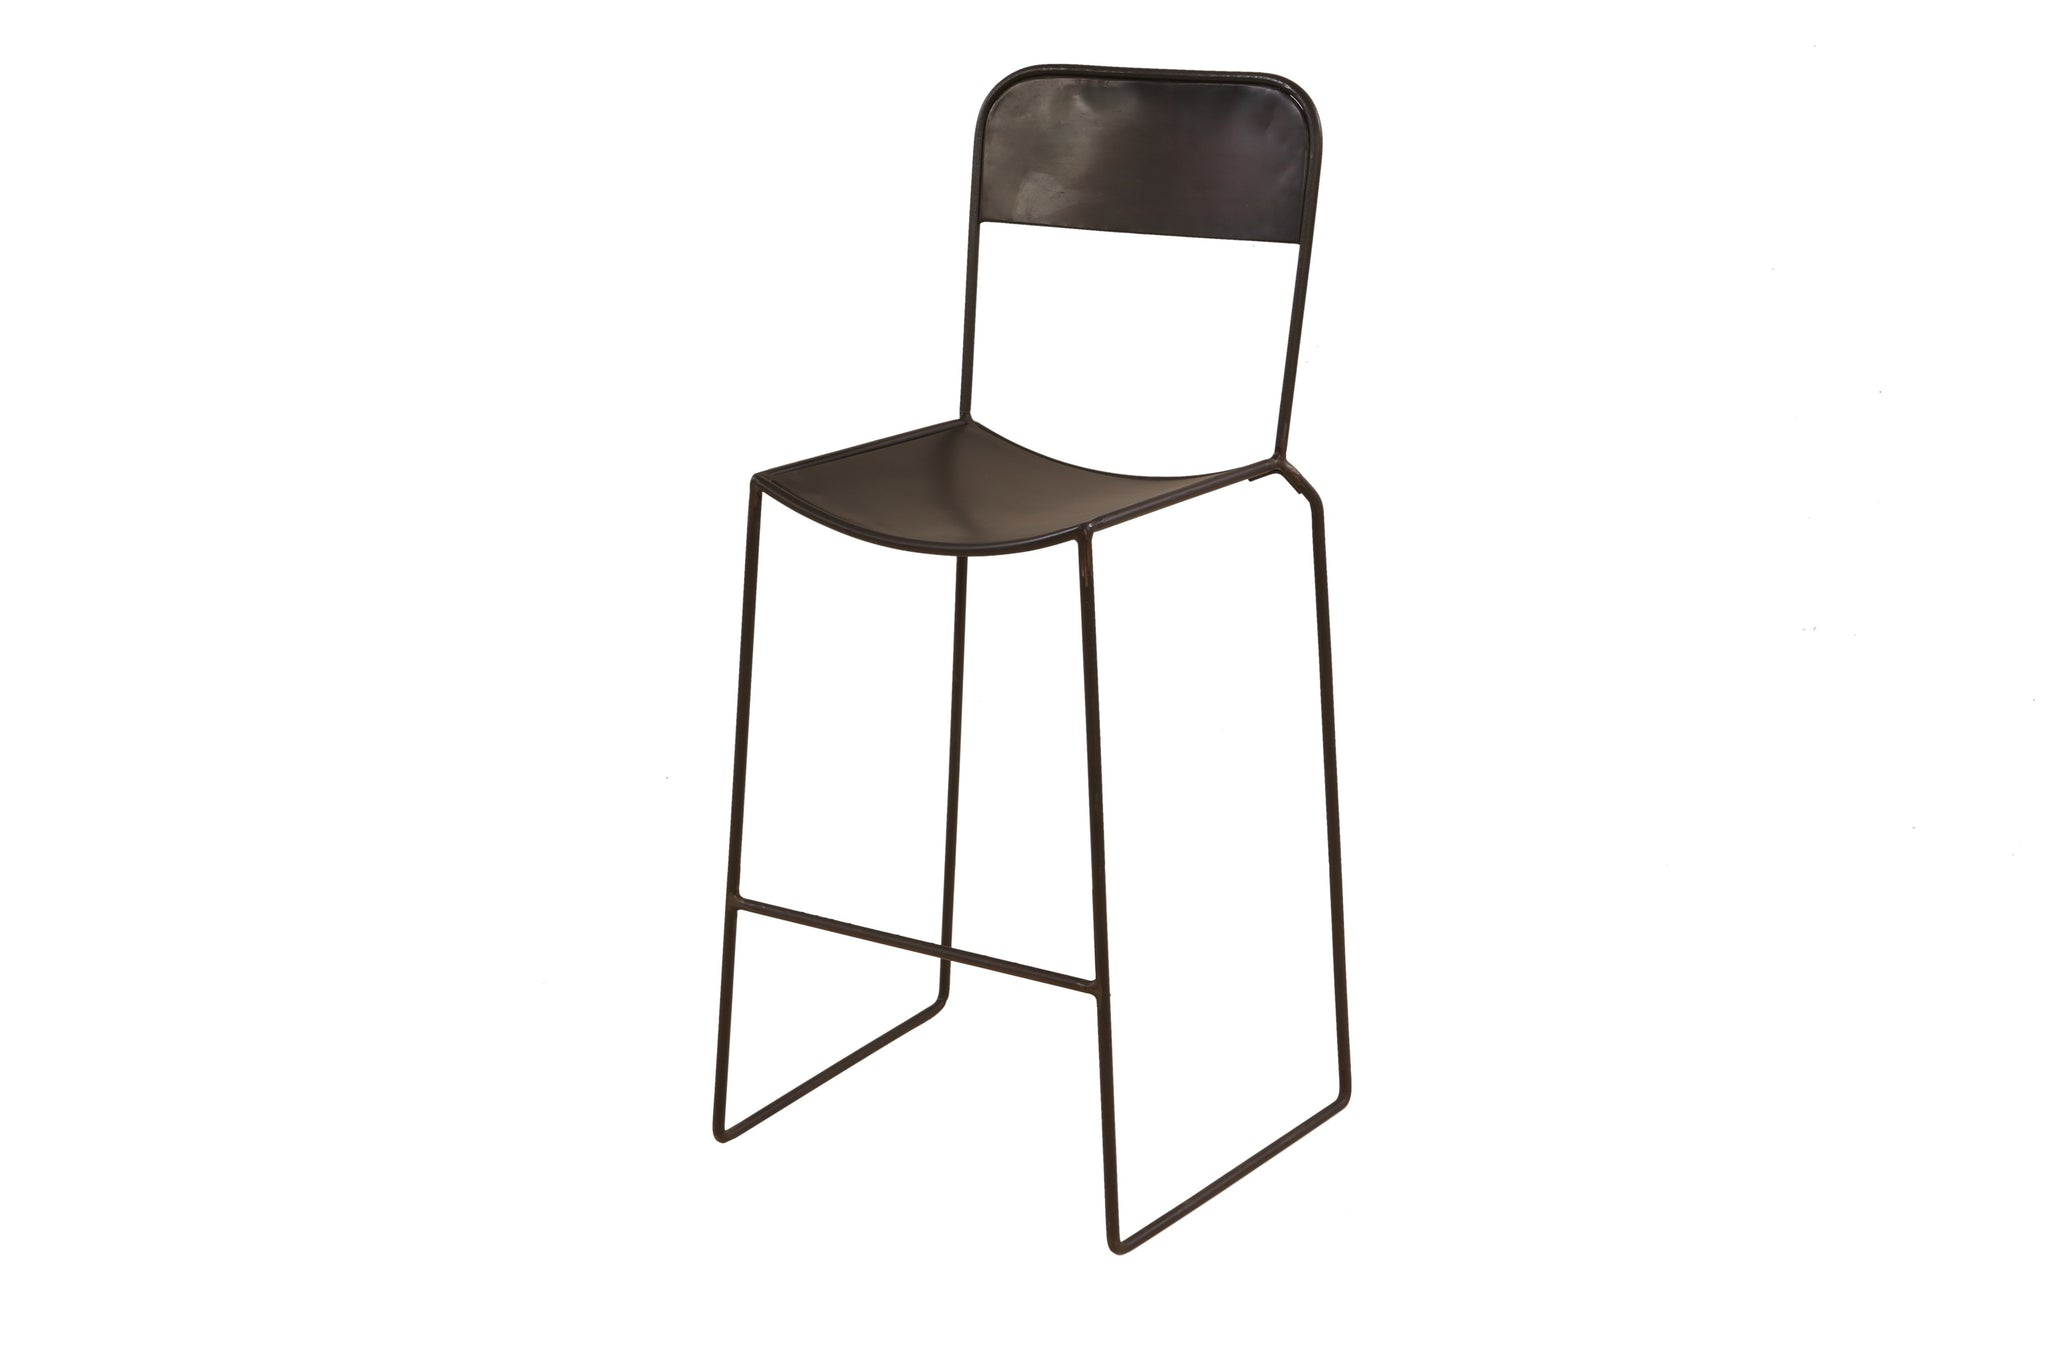 Lucas Bros. Kitchen Counter Height Chair / Stool x 2